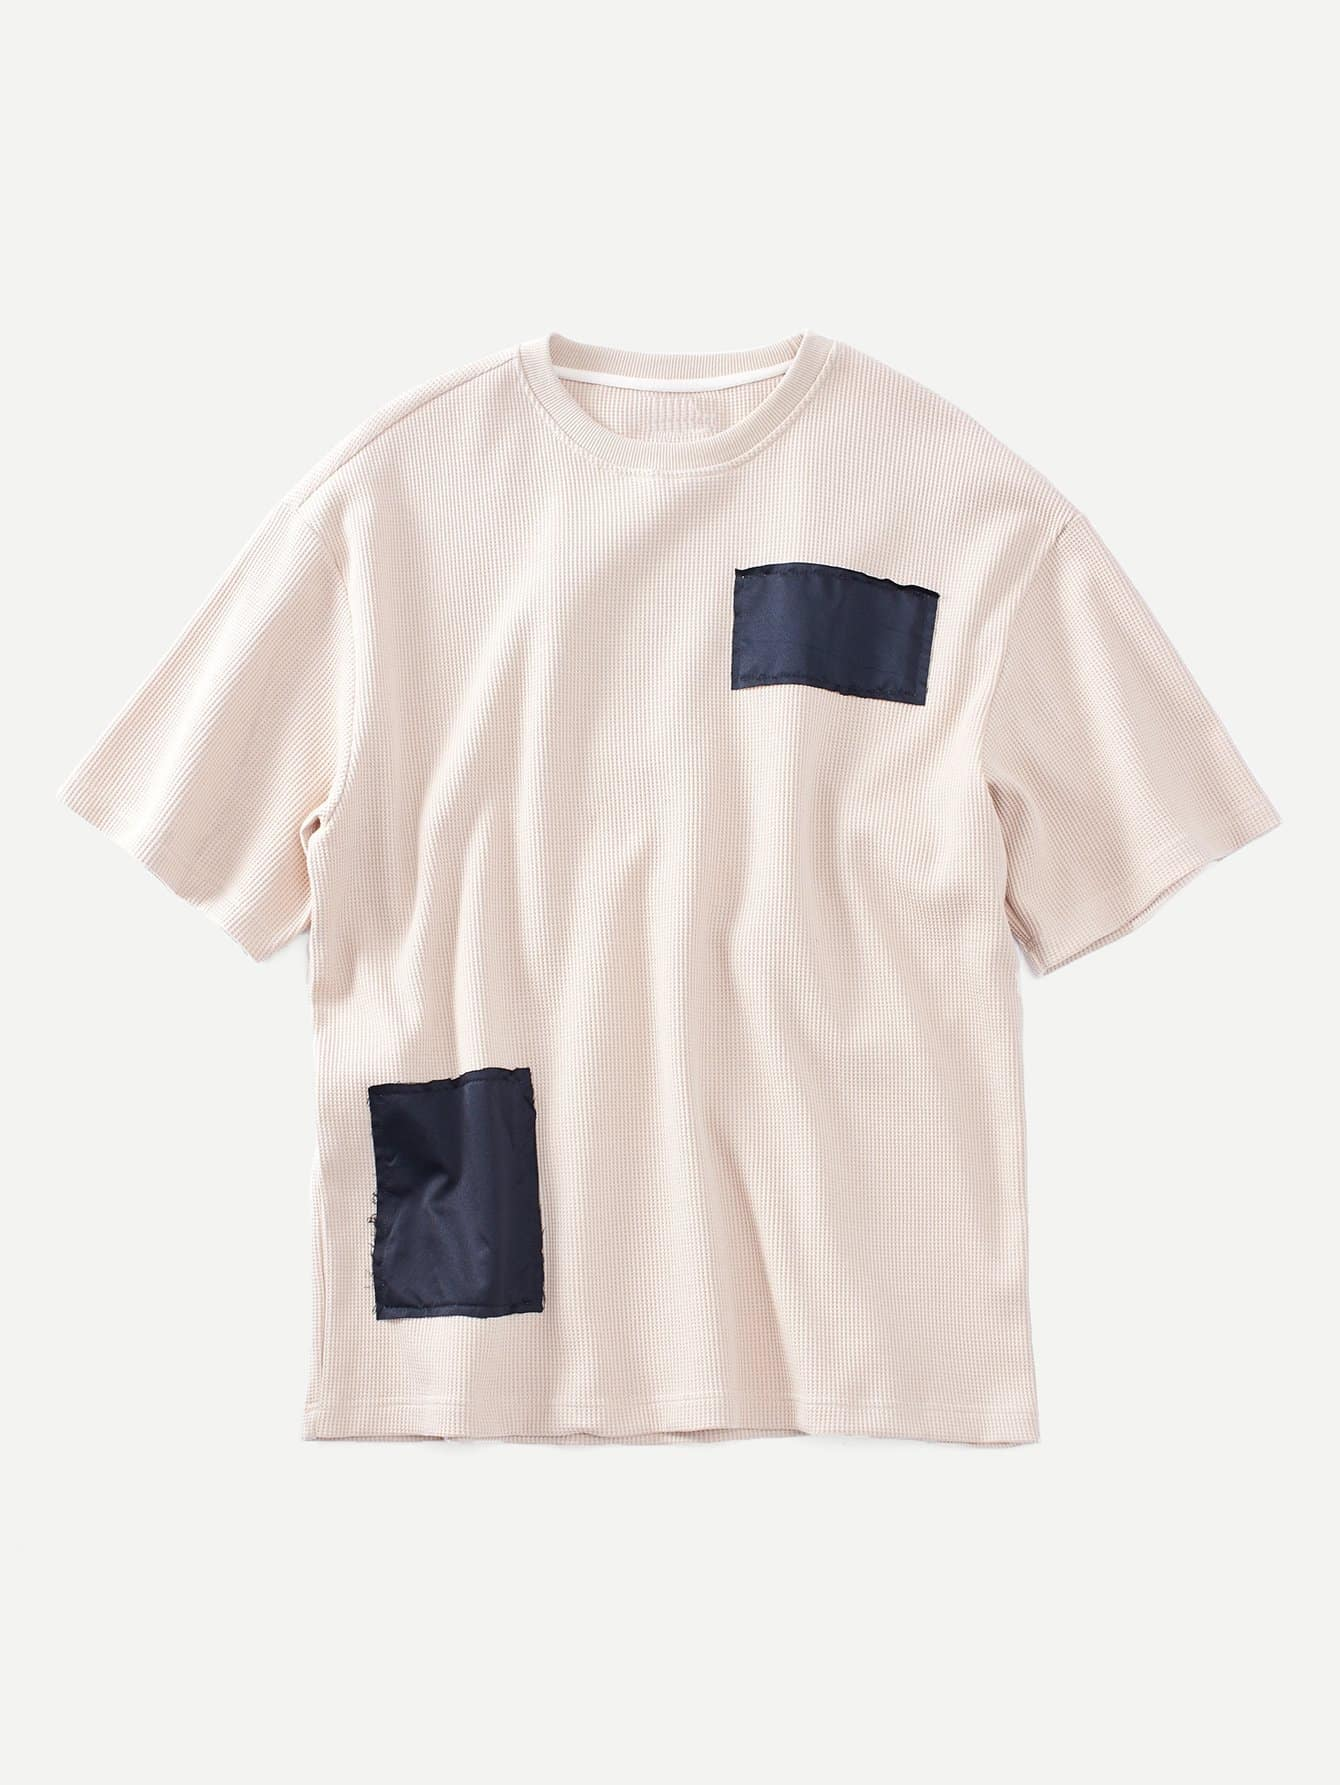 Patched Ribbed Tee